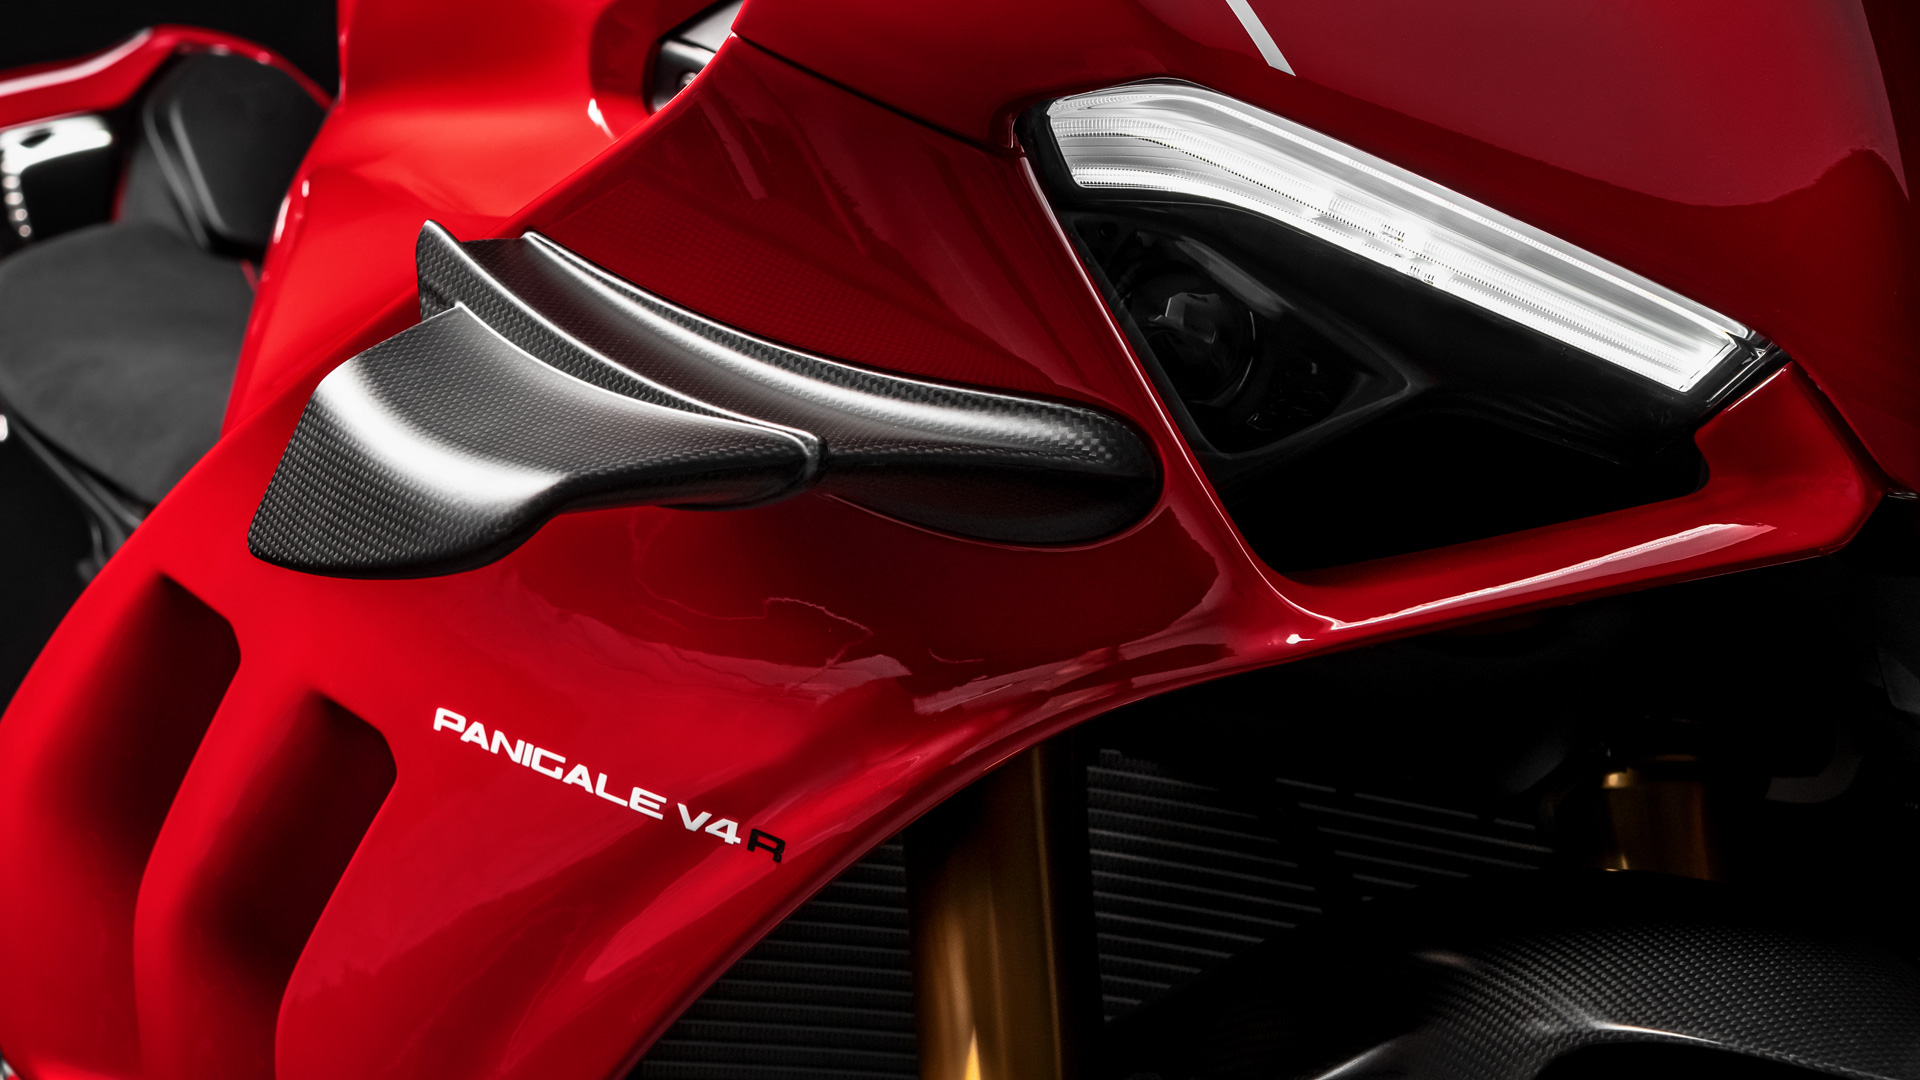 New Ducati Panigale V4 R Pure Racing Adrenaline